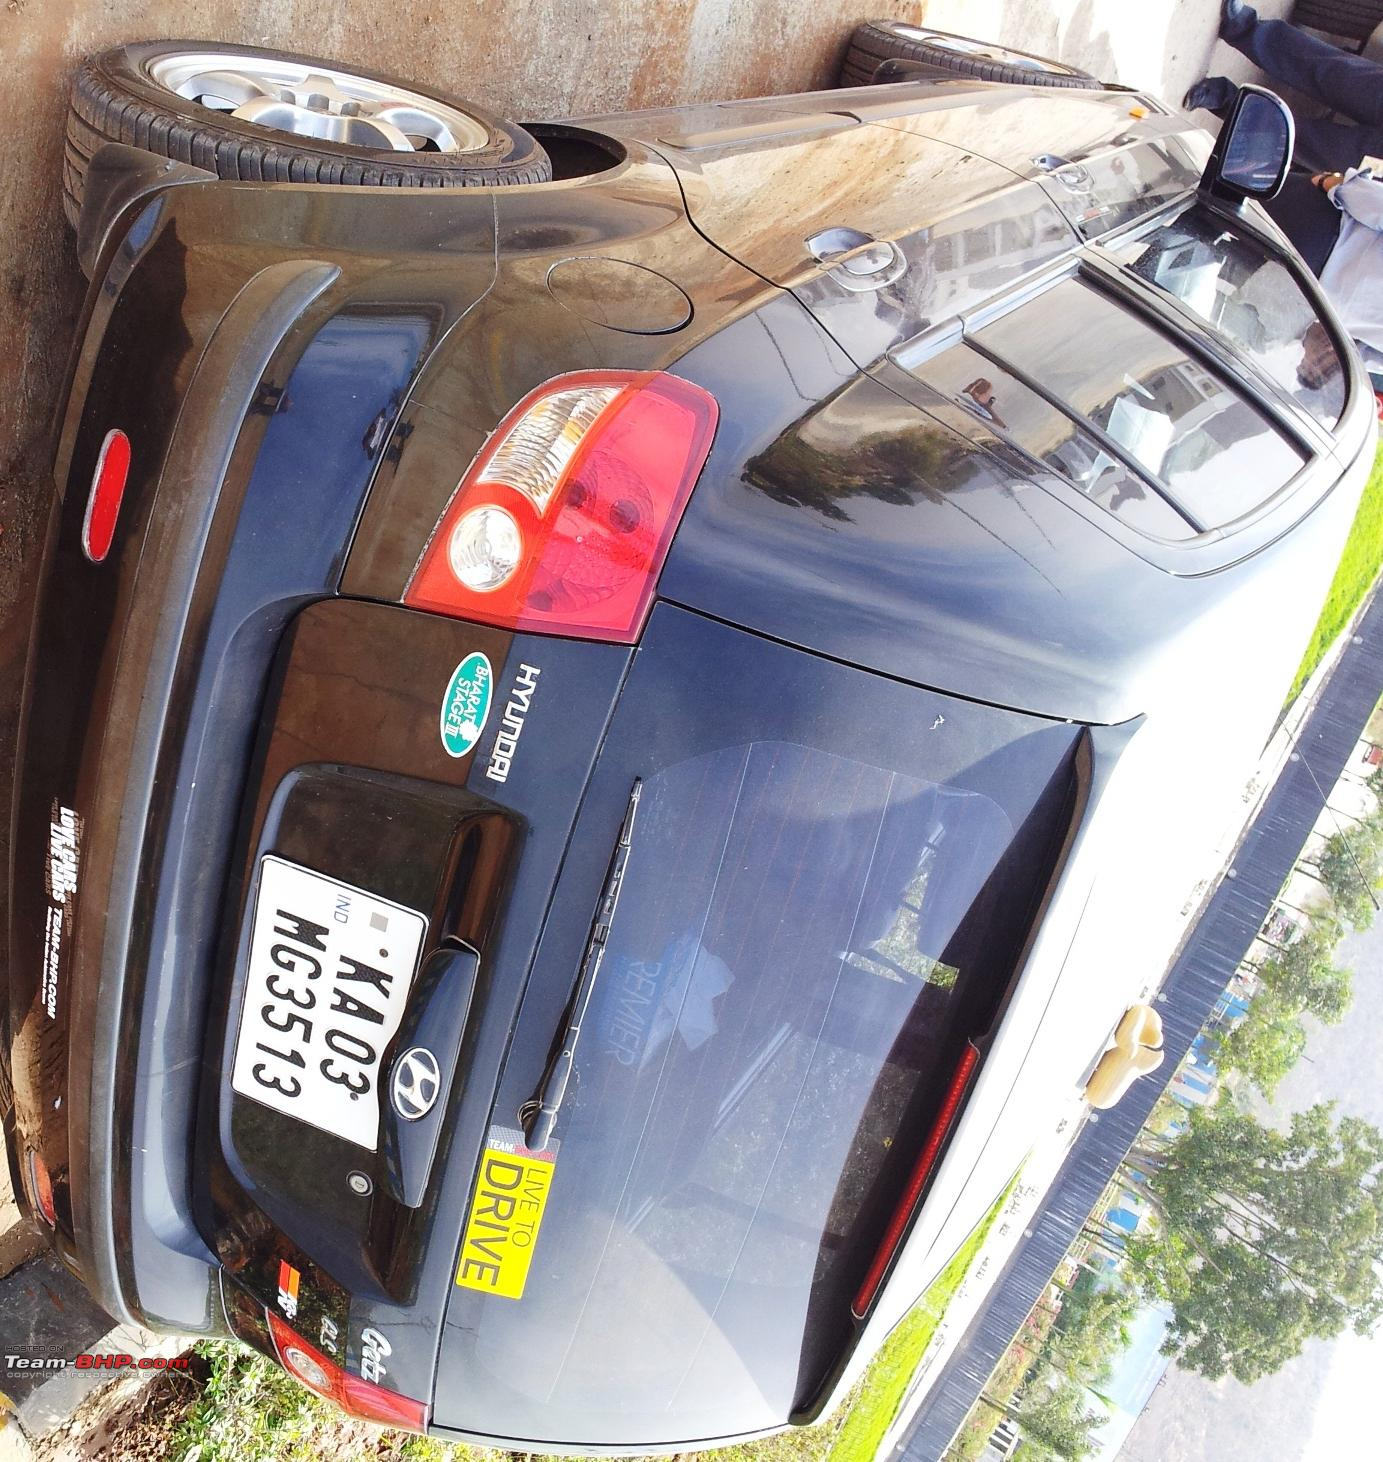 Car sticker design in bangalore - Bangalore Folks Can You Guess Whose Ride That Is